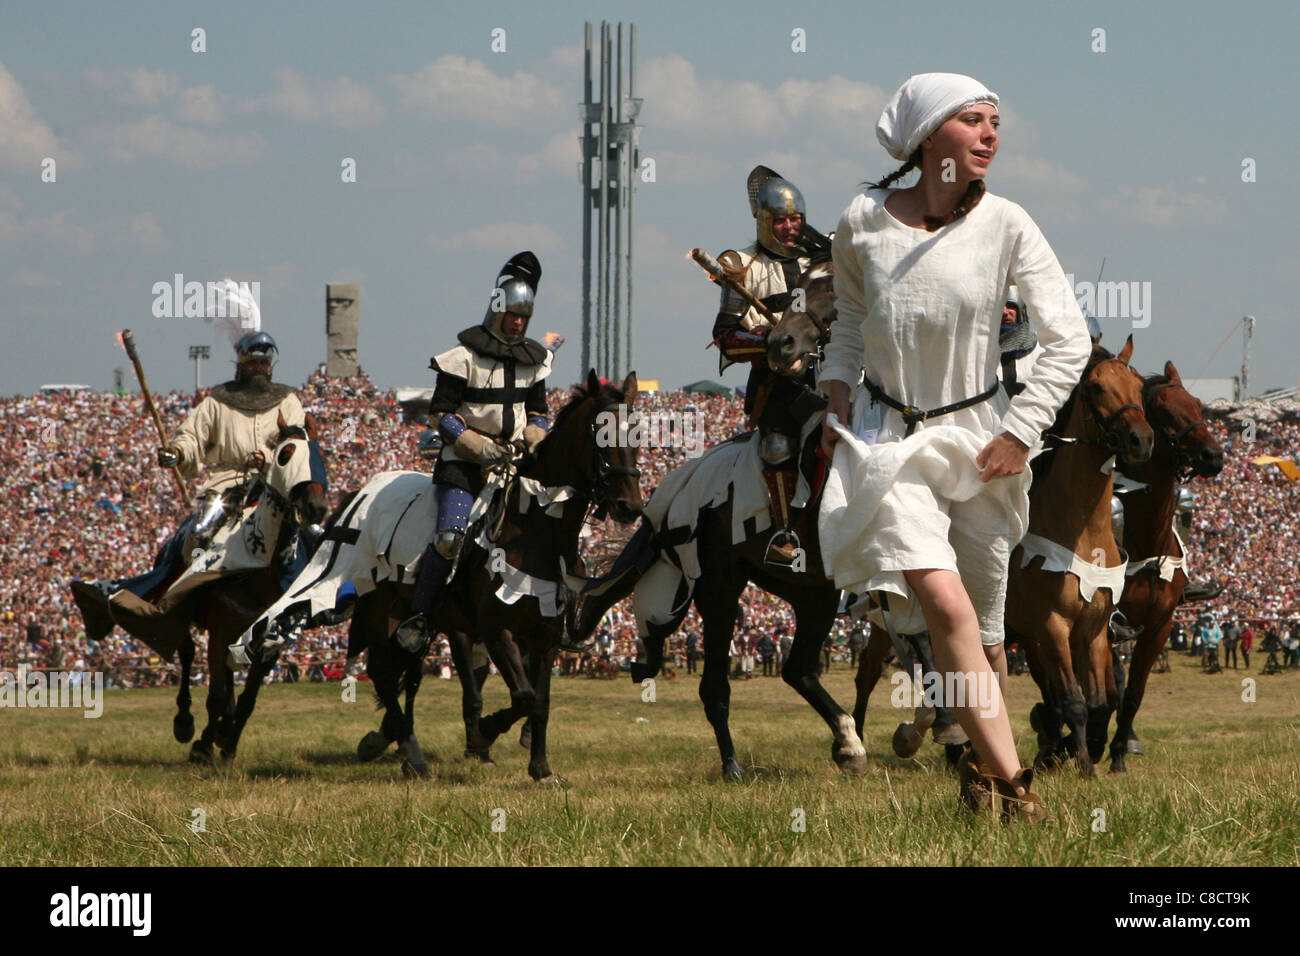 Re-enactment of the Battle of Grunwald (1410) in Northern Poland.